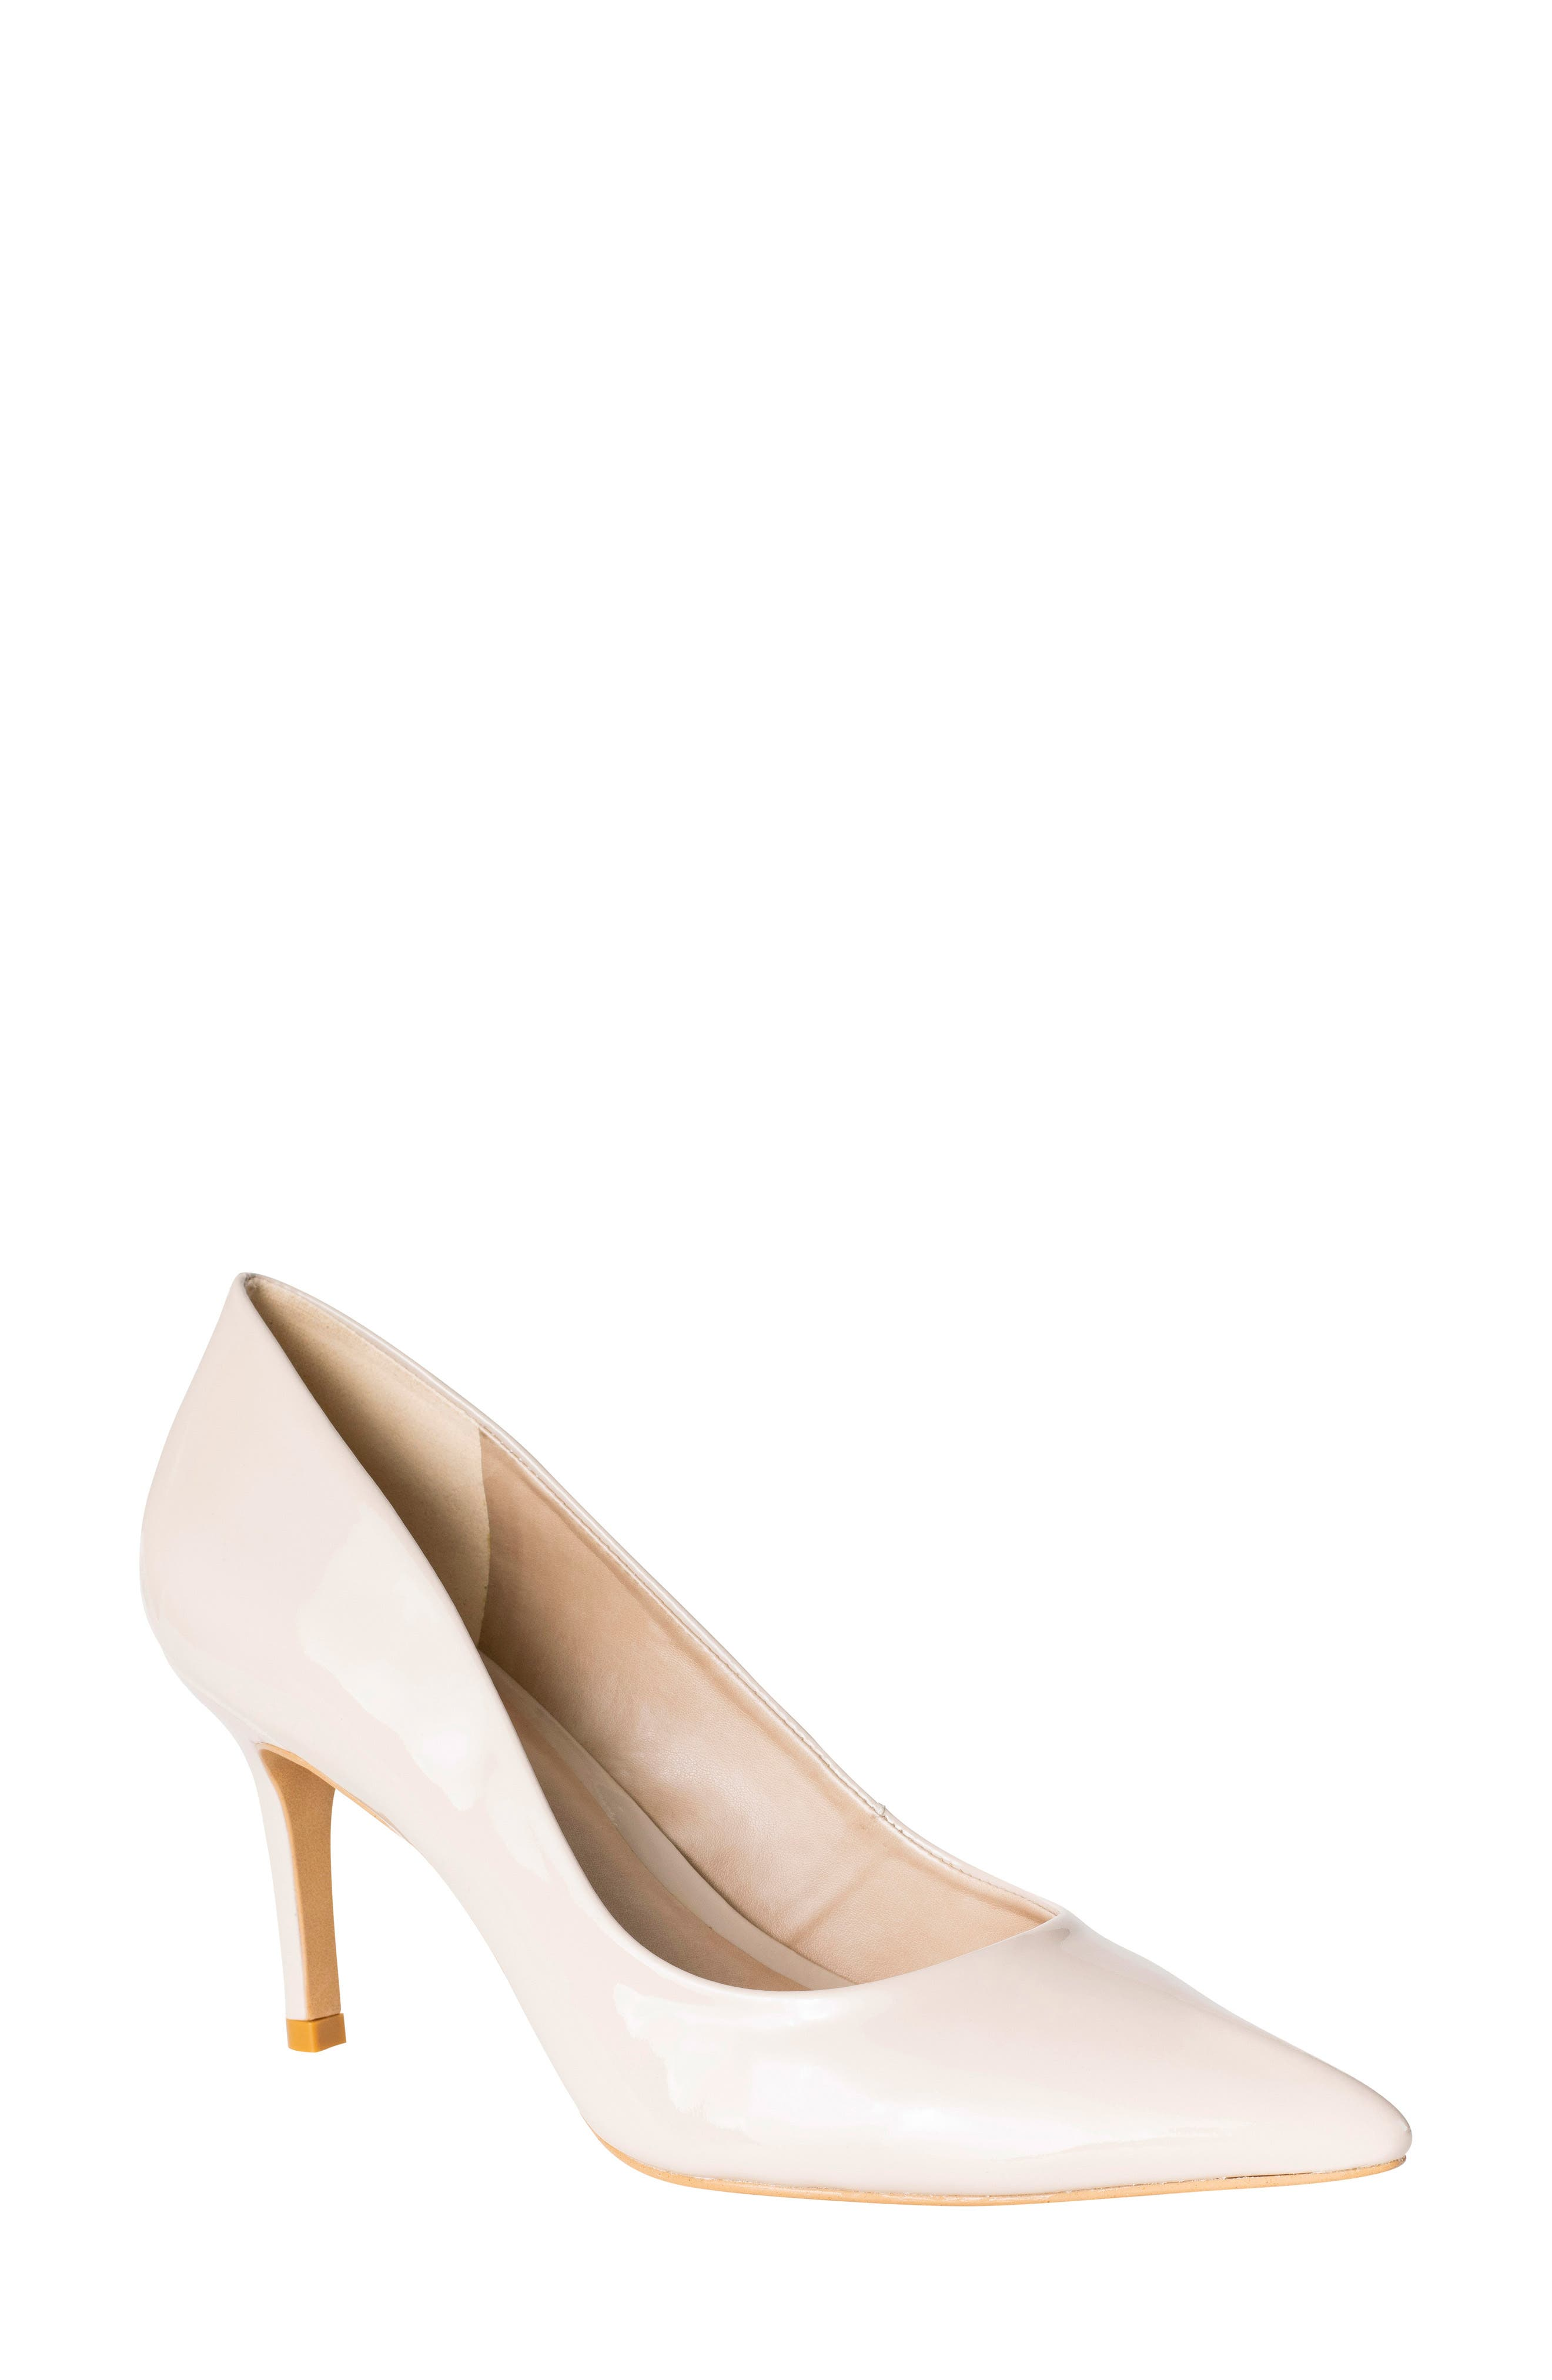 Anya Pointy Toe Pump,                             Main thumbnail 1, color,                             NUDE PATENT LEATHER